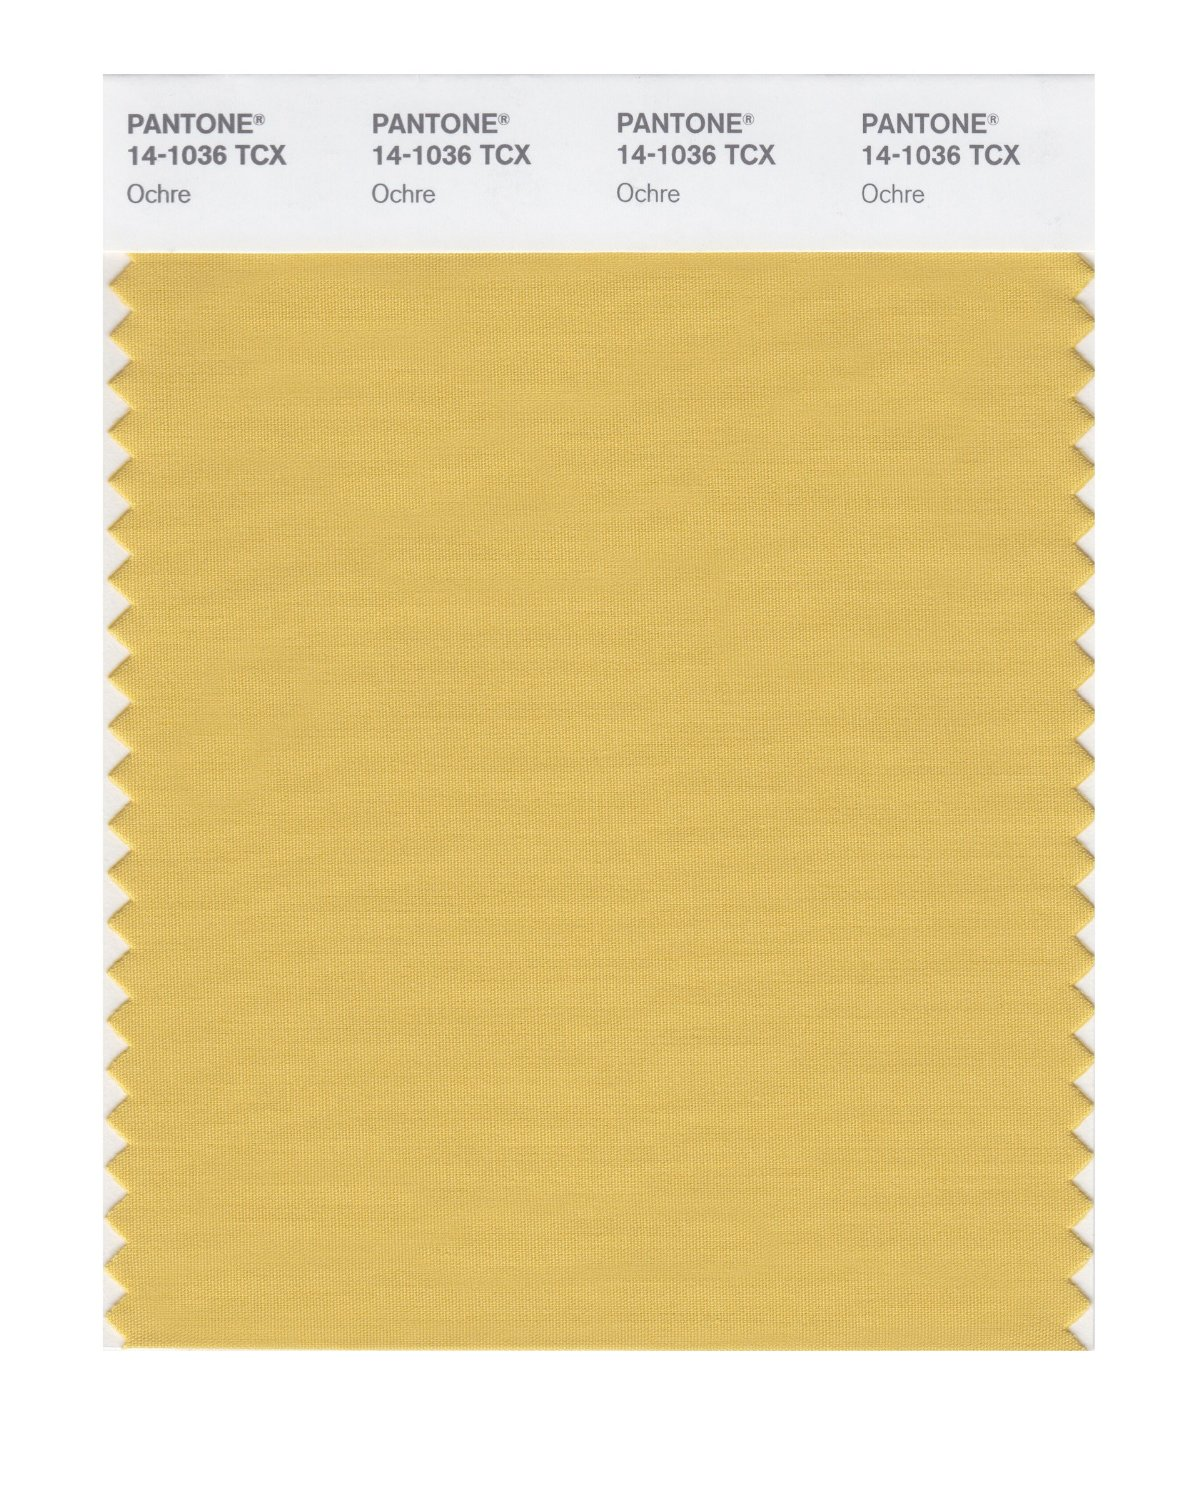 Pantone Smart Swatch 14-1036 Ochre